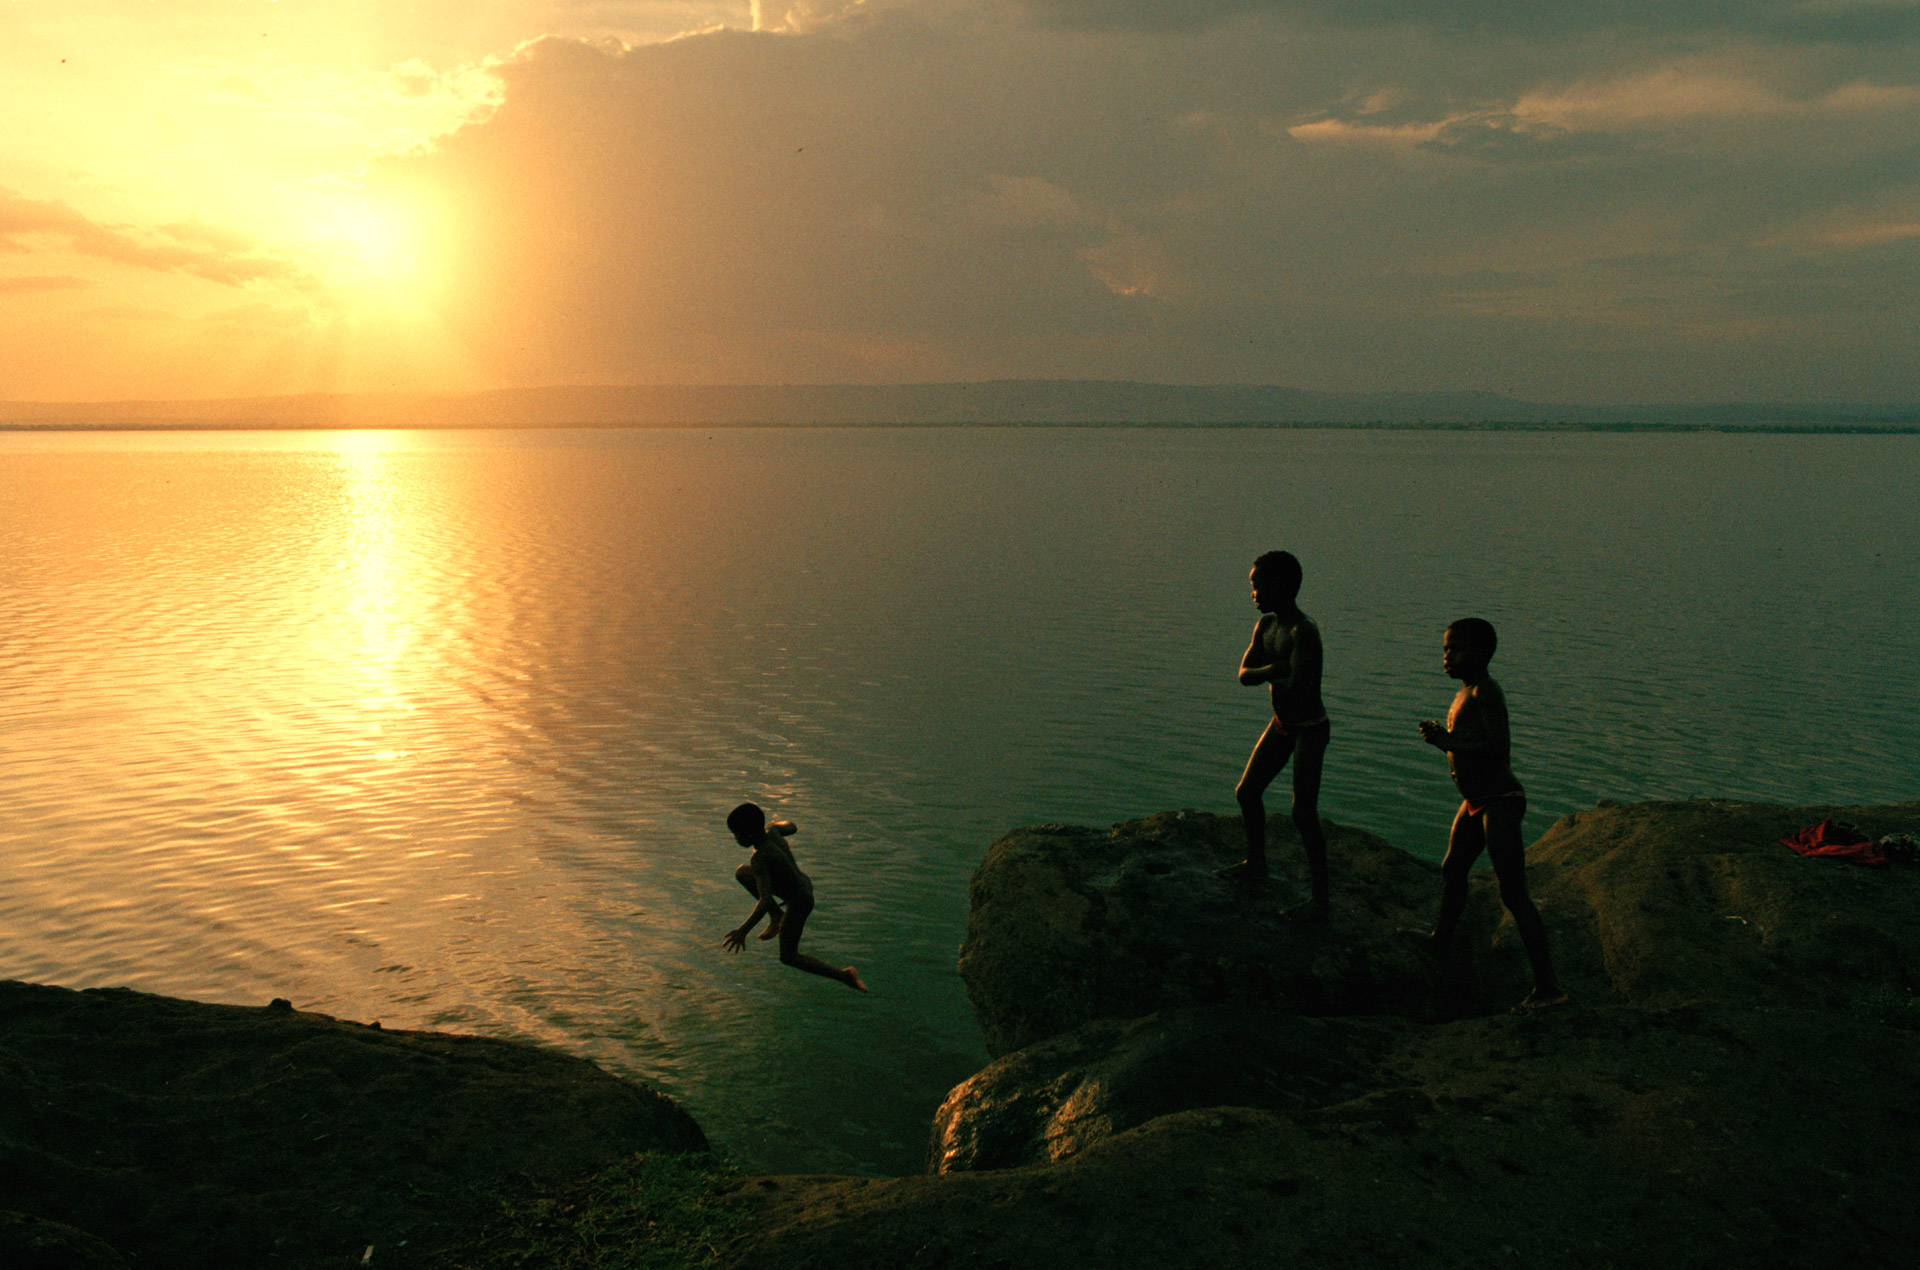 Boys jumping into the lake in Amora Gedel Park in Hawassa